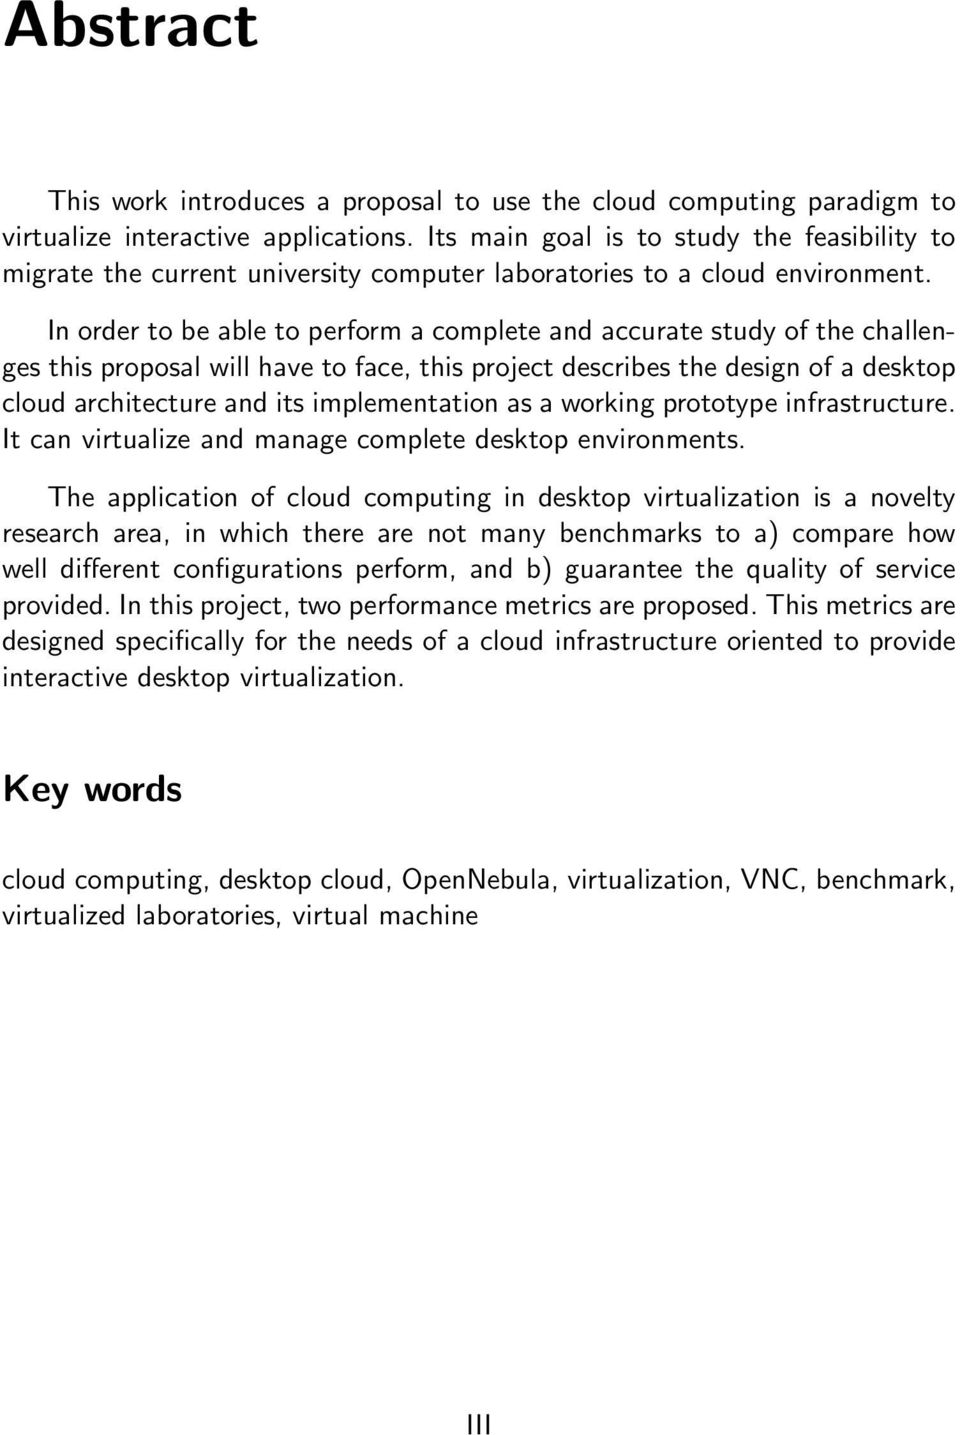 In order to be able to perform a complete and accurate study of the challenges this proposal will have to face, this project describes the design of a desktop cloud architecture and its